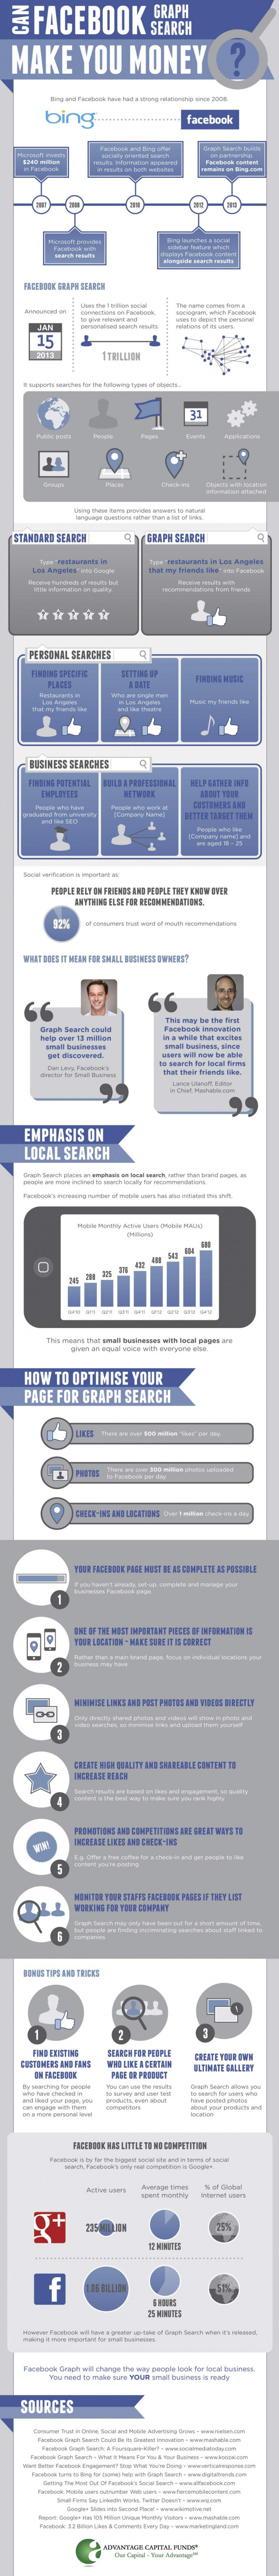 can facebook graph make you money infographic 514702c8362d2 w587 Friday Social Round Up: Facebook Hashtags, Digg Removed from Google, Facebook Lookalike Audiences, @BBCWeather Hack and #Twitter7